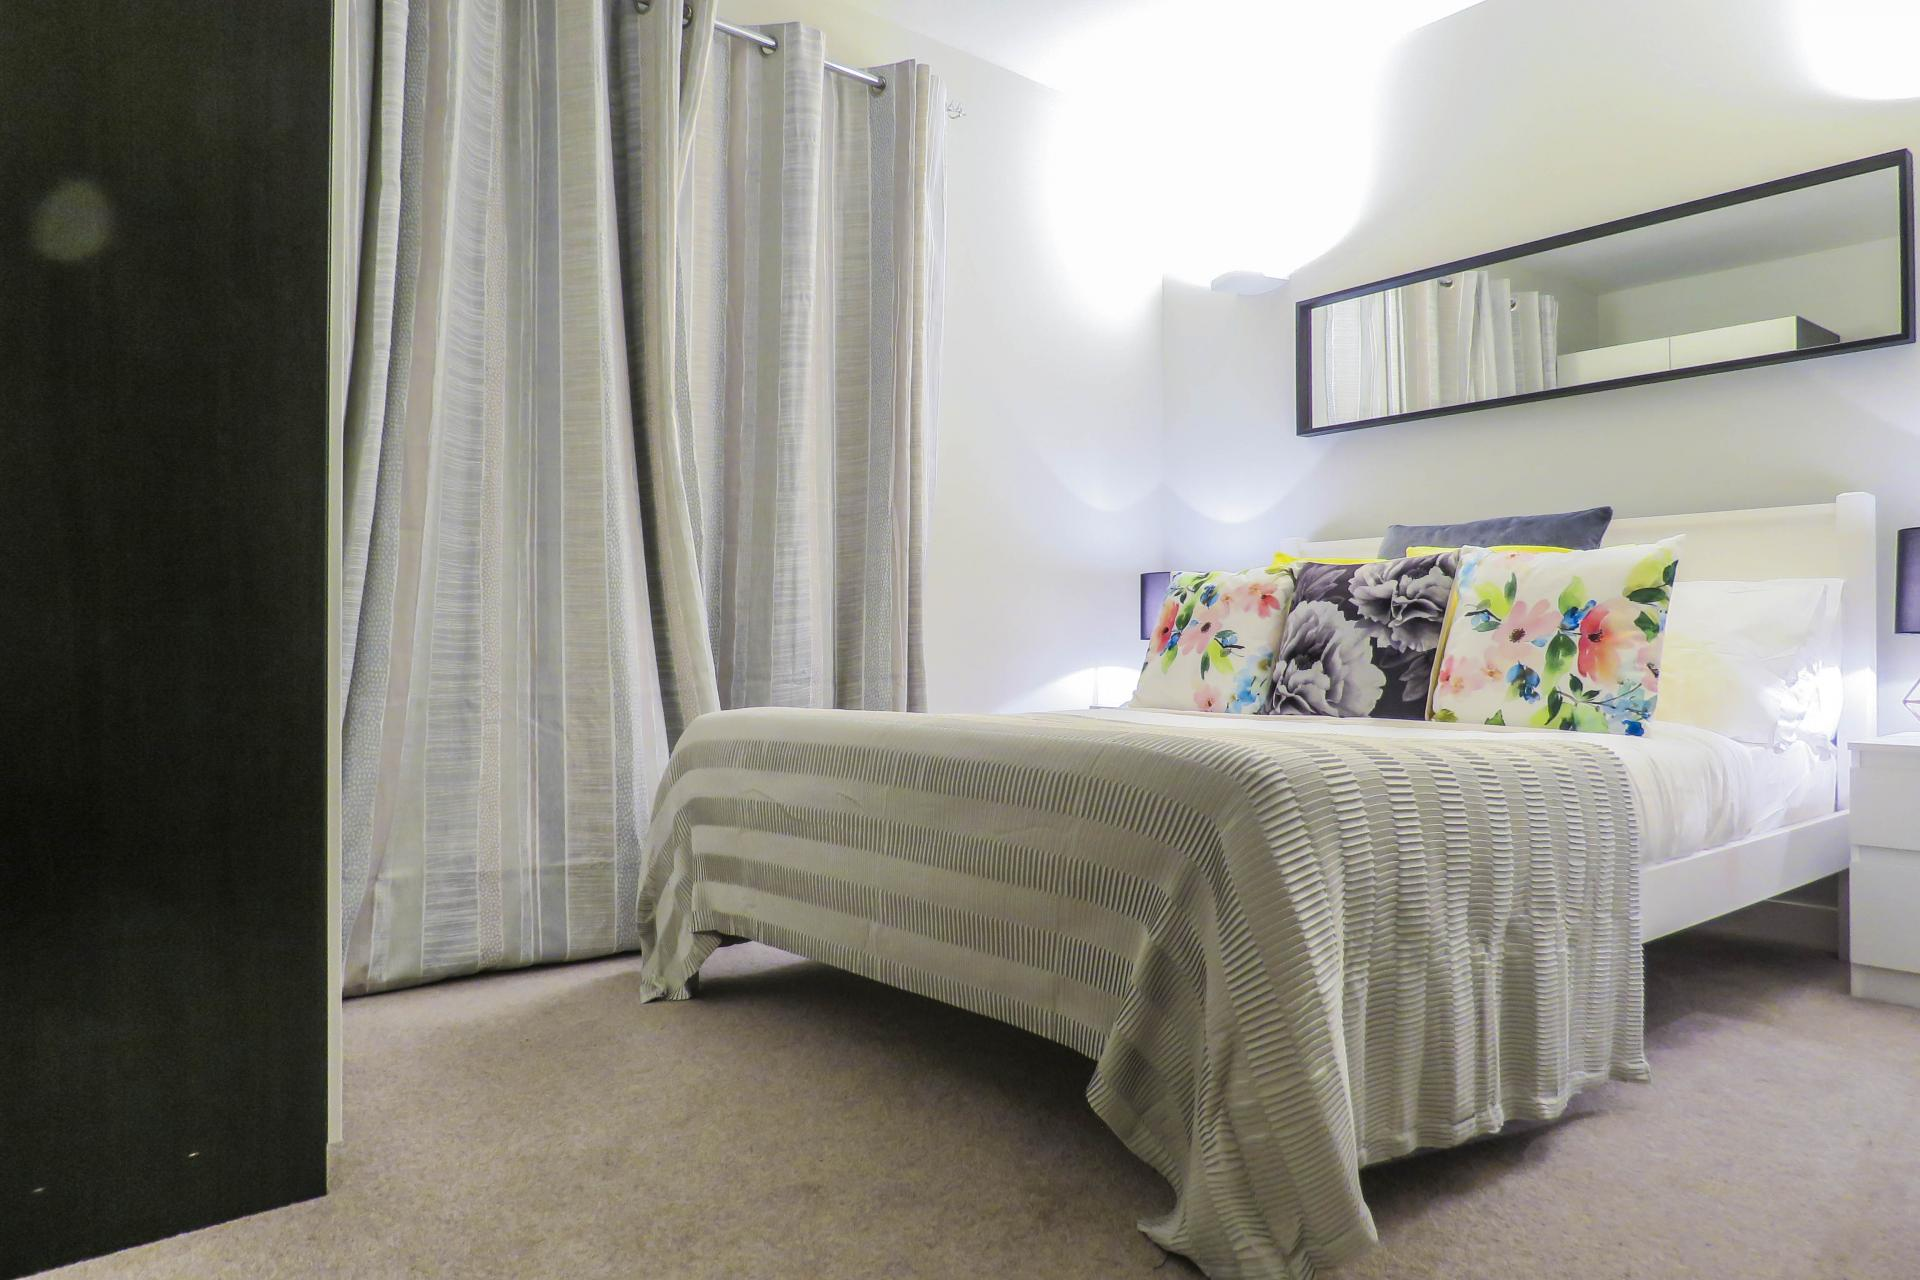 Bed spread at Jewellery Quarter Serviced Apartments - Citybase Apartments